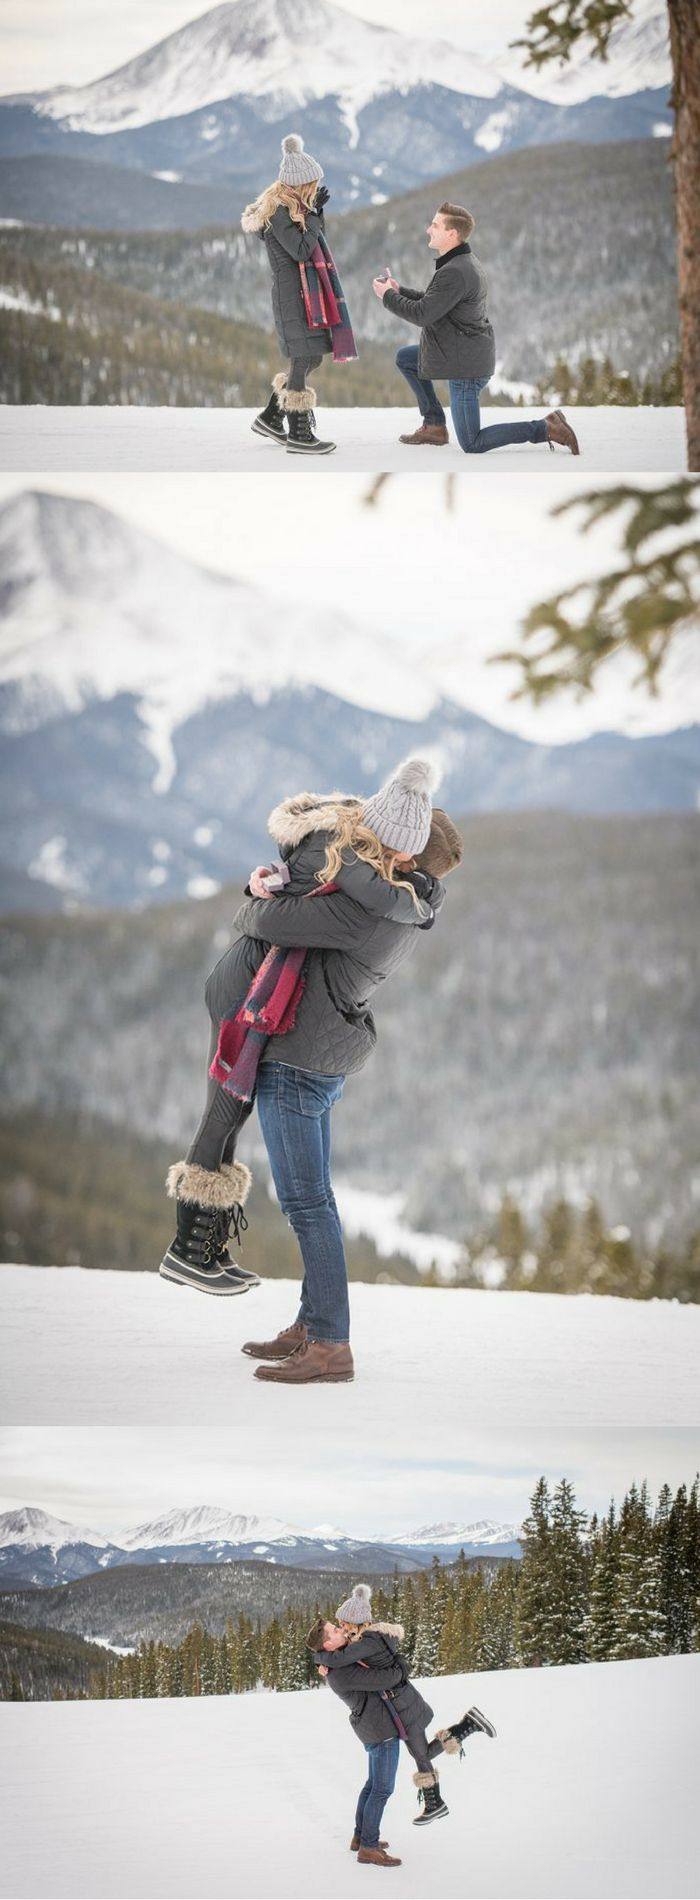 He got on one knee with the perfect mountain view! This is the sweetest snowy proposal.